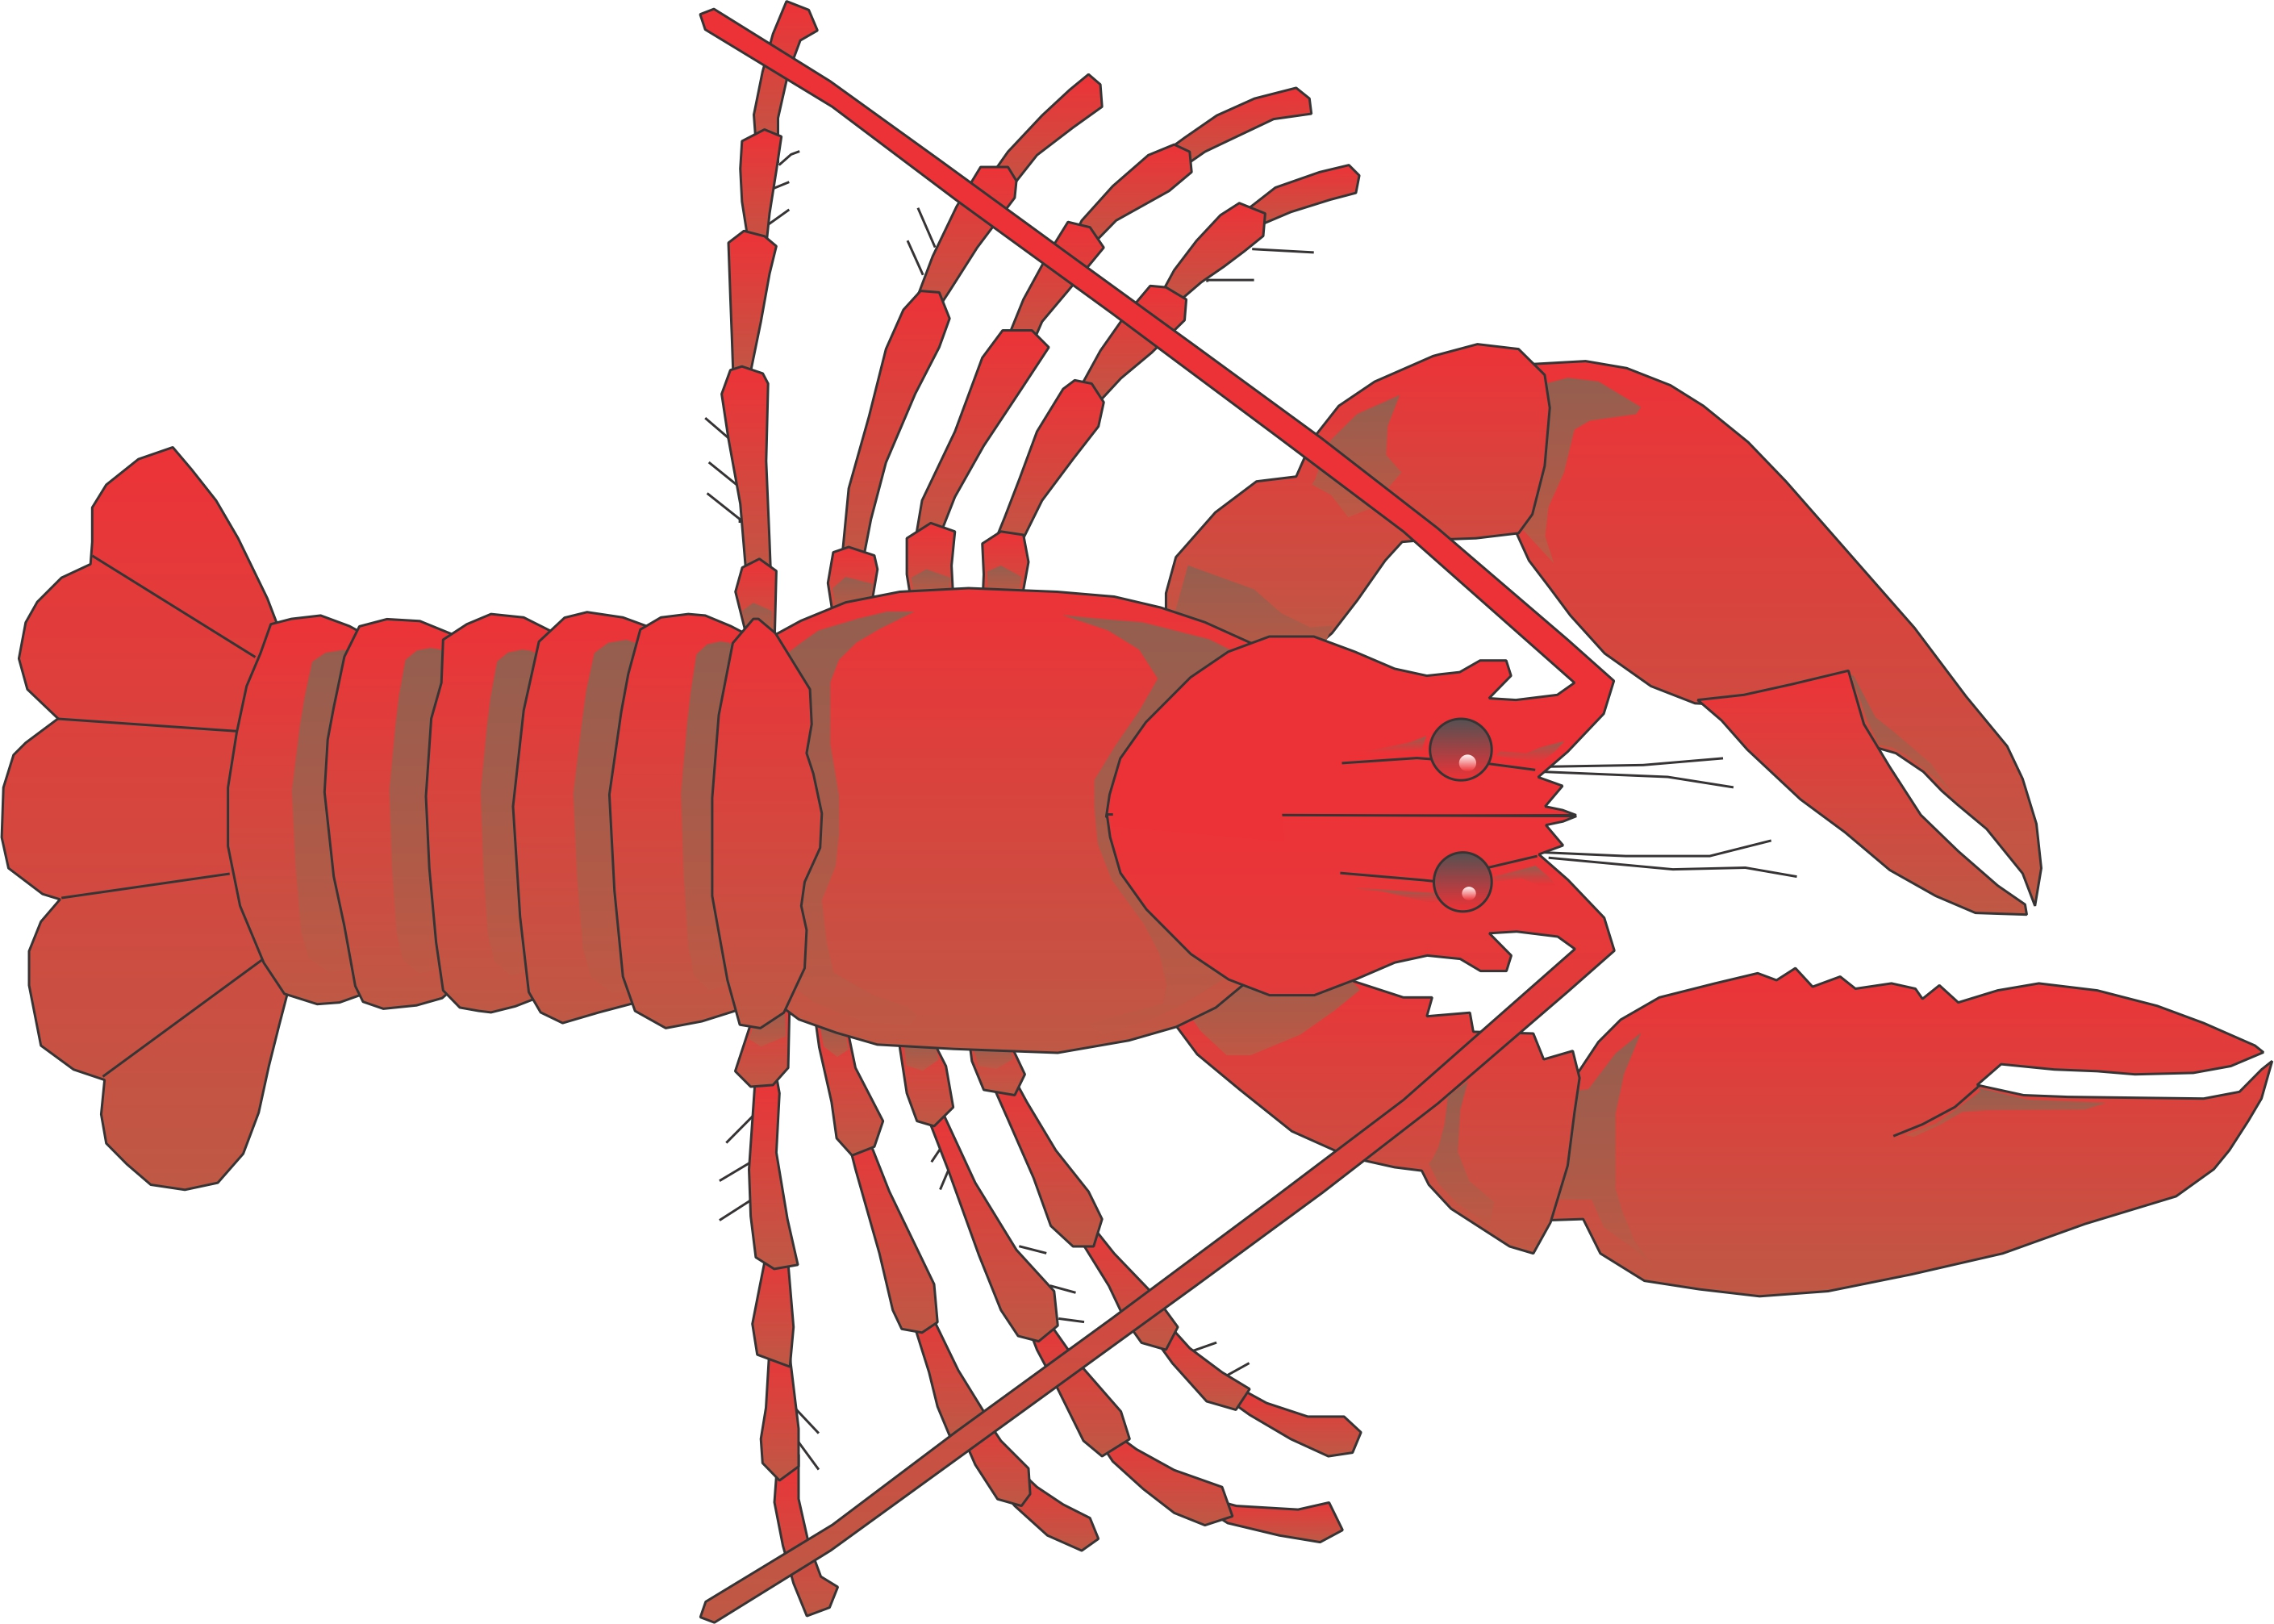 Lobster outline clipart 4